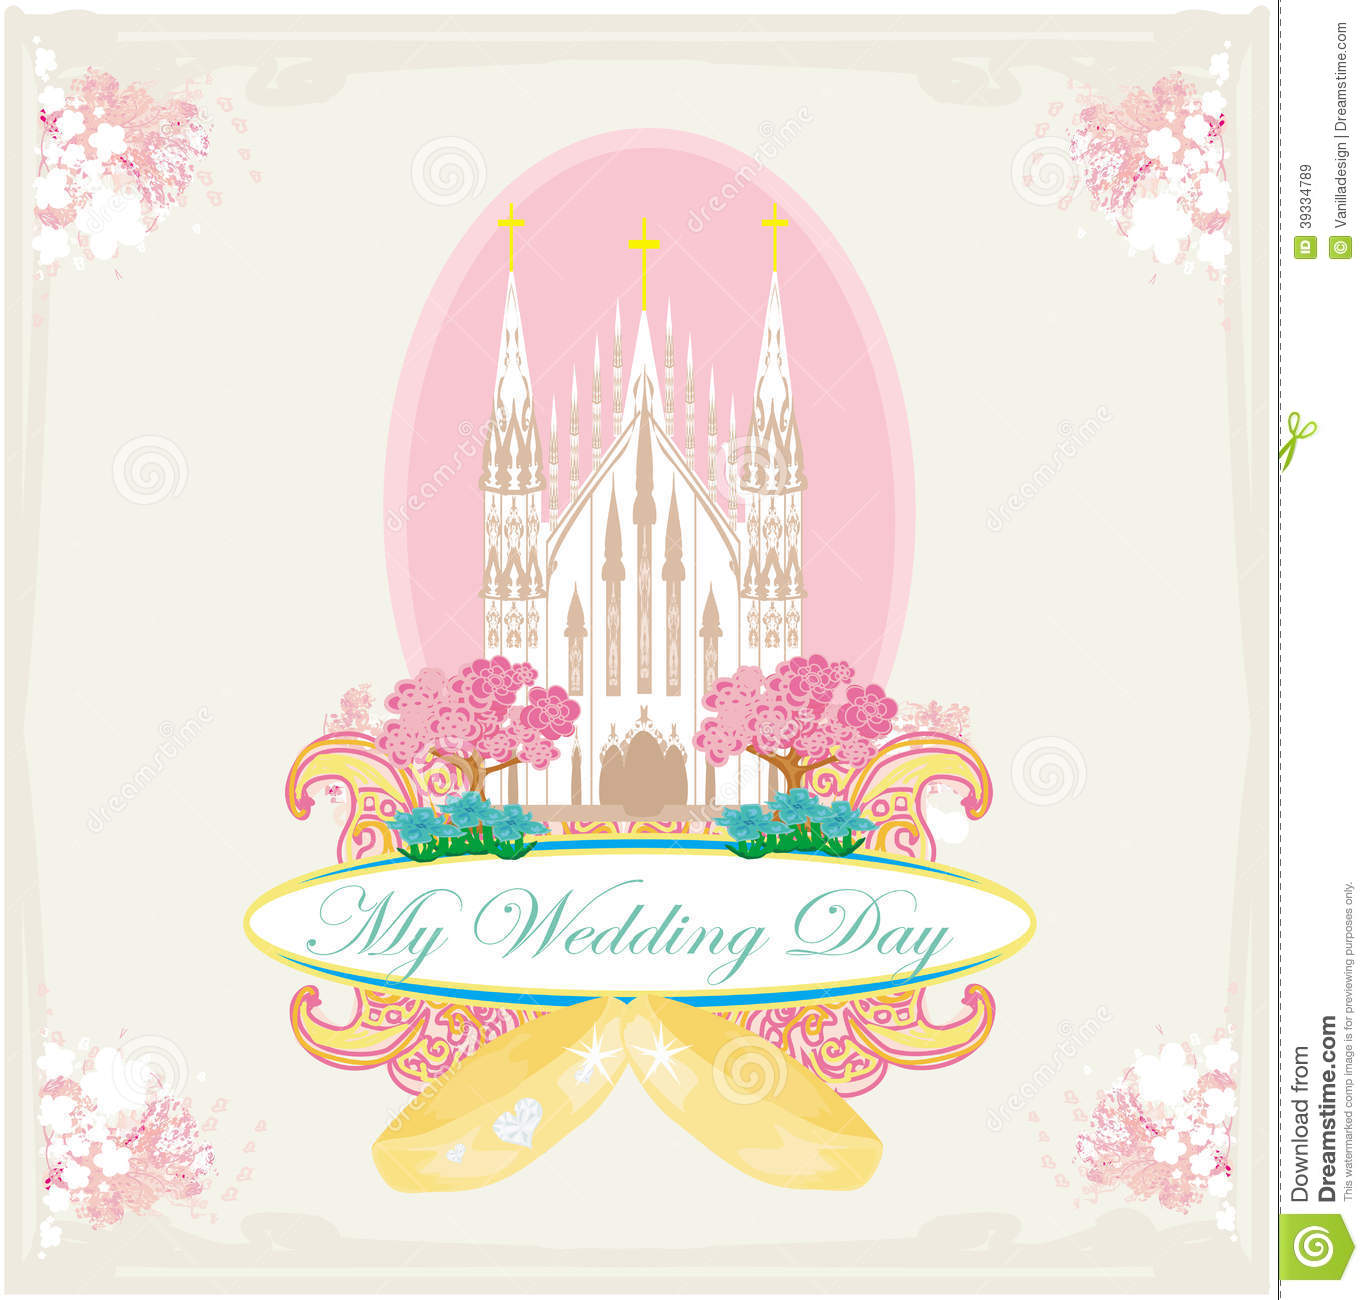 Vintage wedding card with rings and Catholic Church